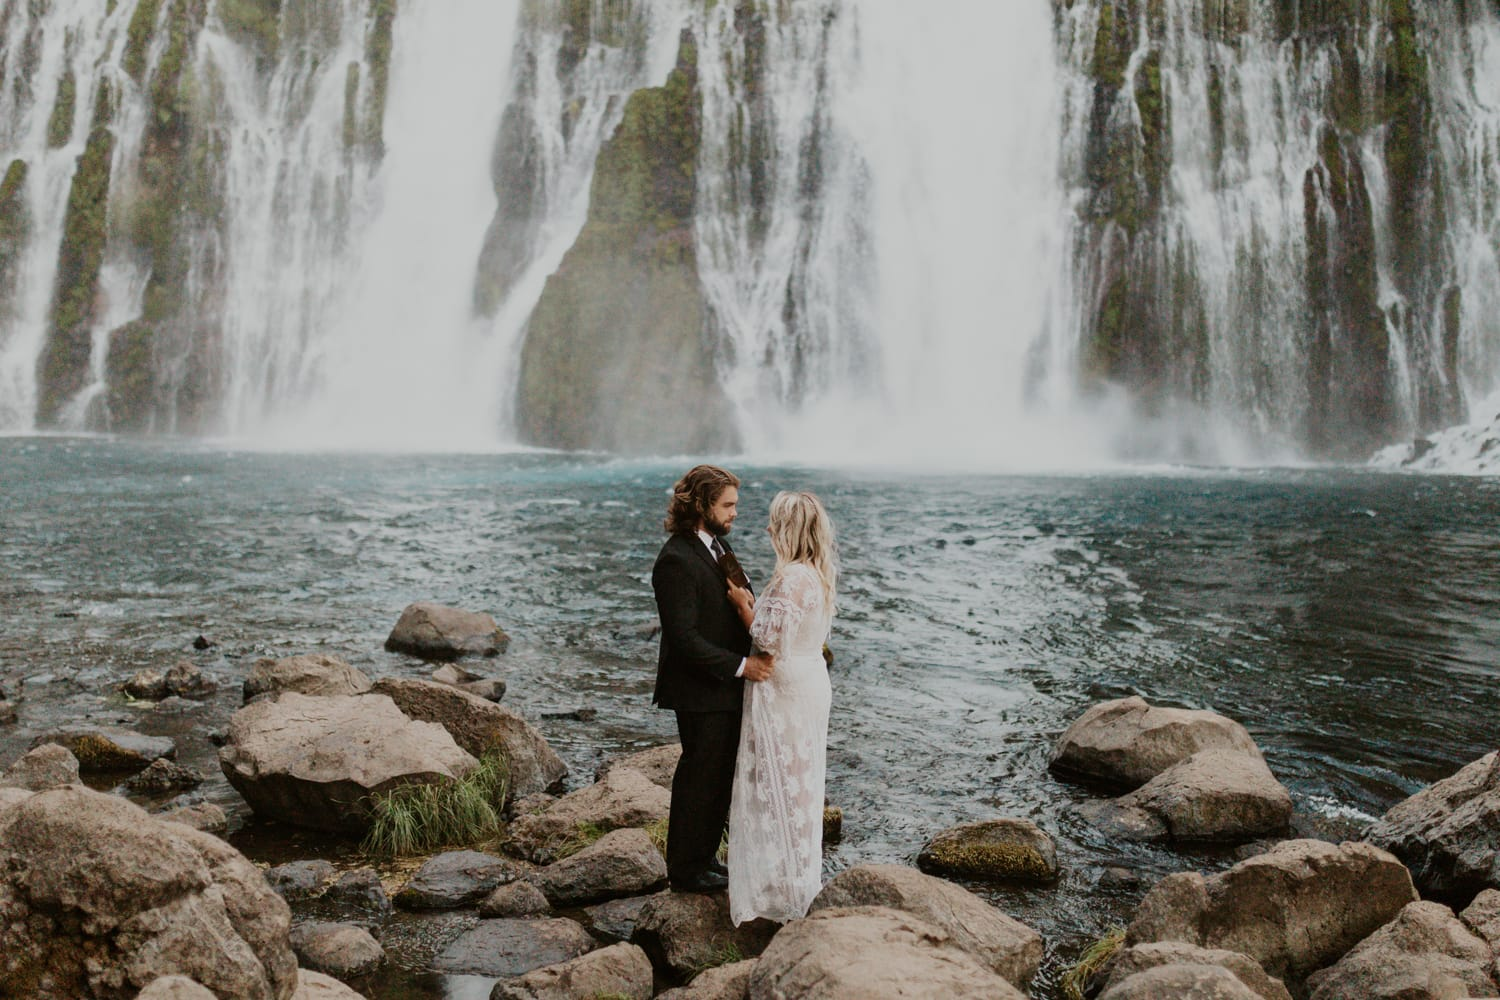 Vow reading at a waterfall.